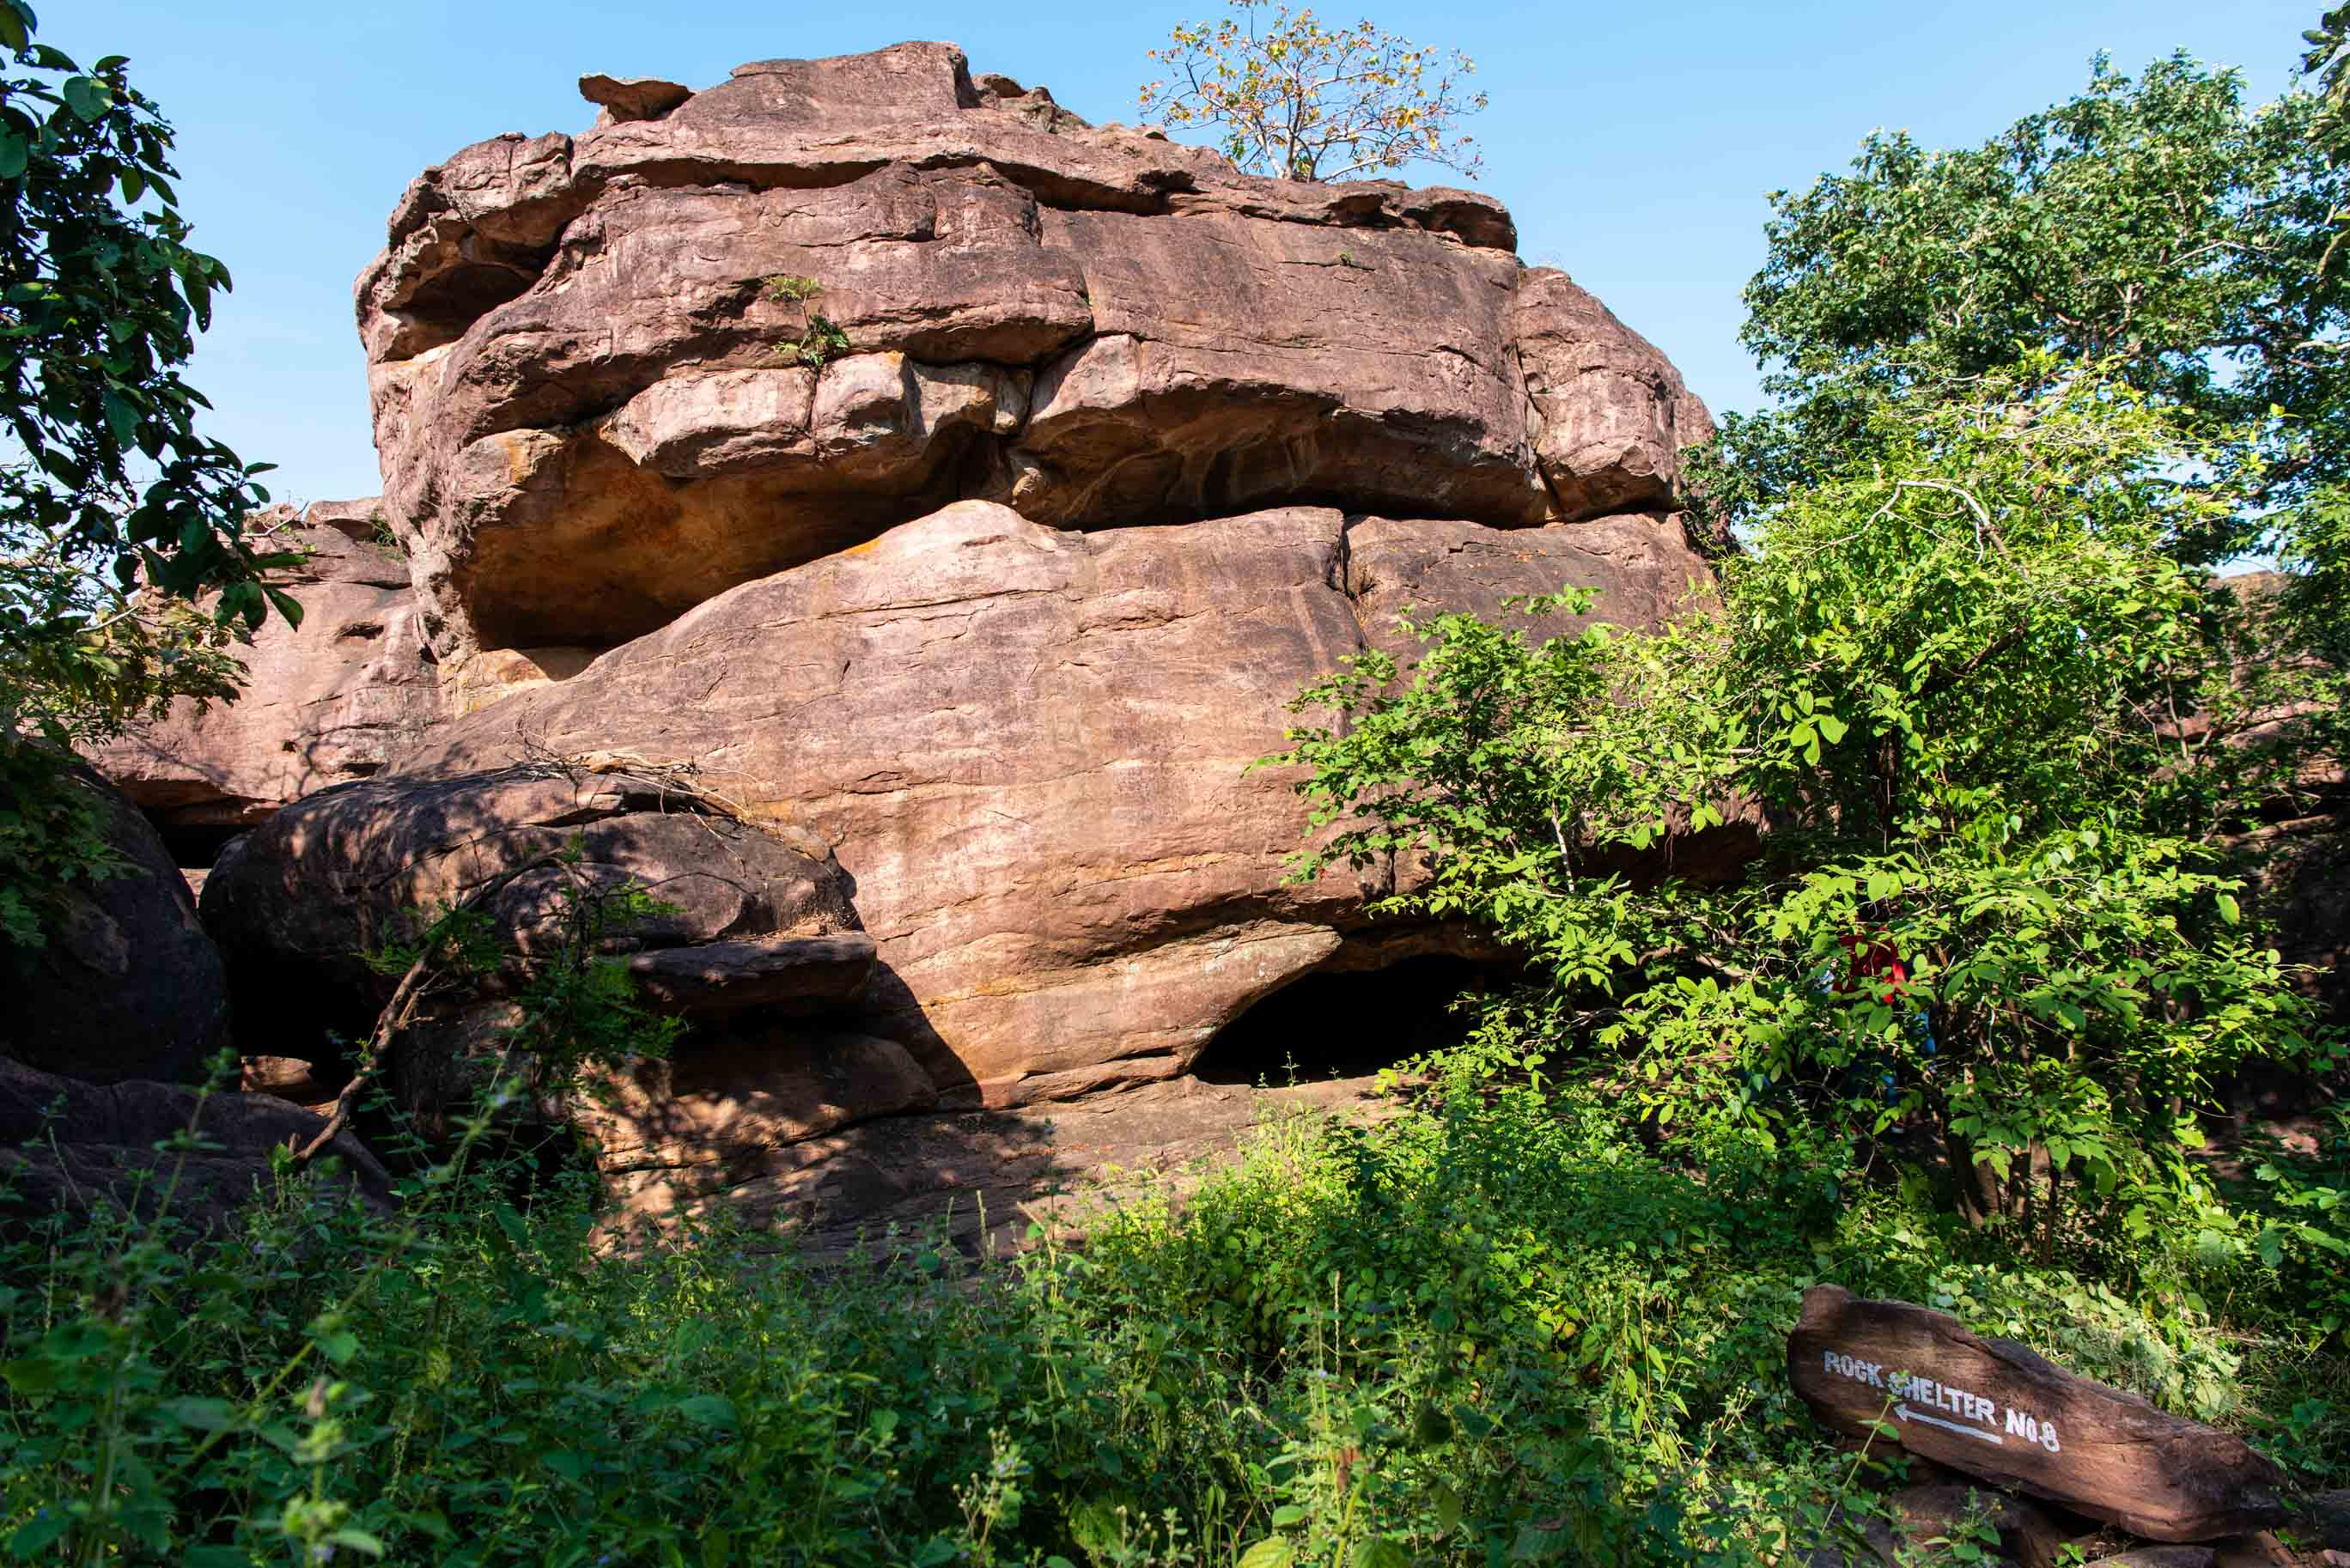 Bhimbetka is a group of 243 rock shelters with only 15 caves open to public viewing